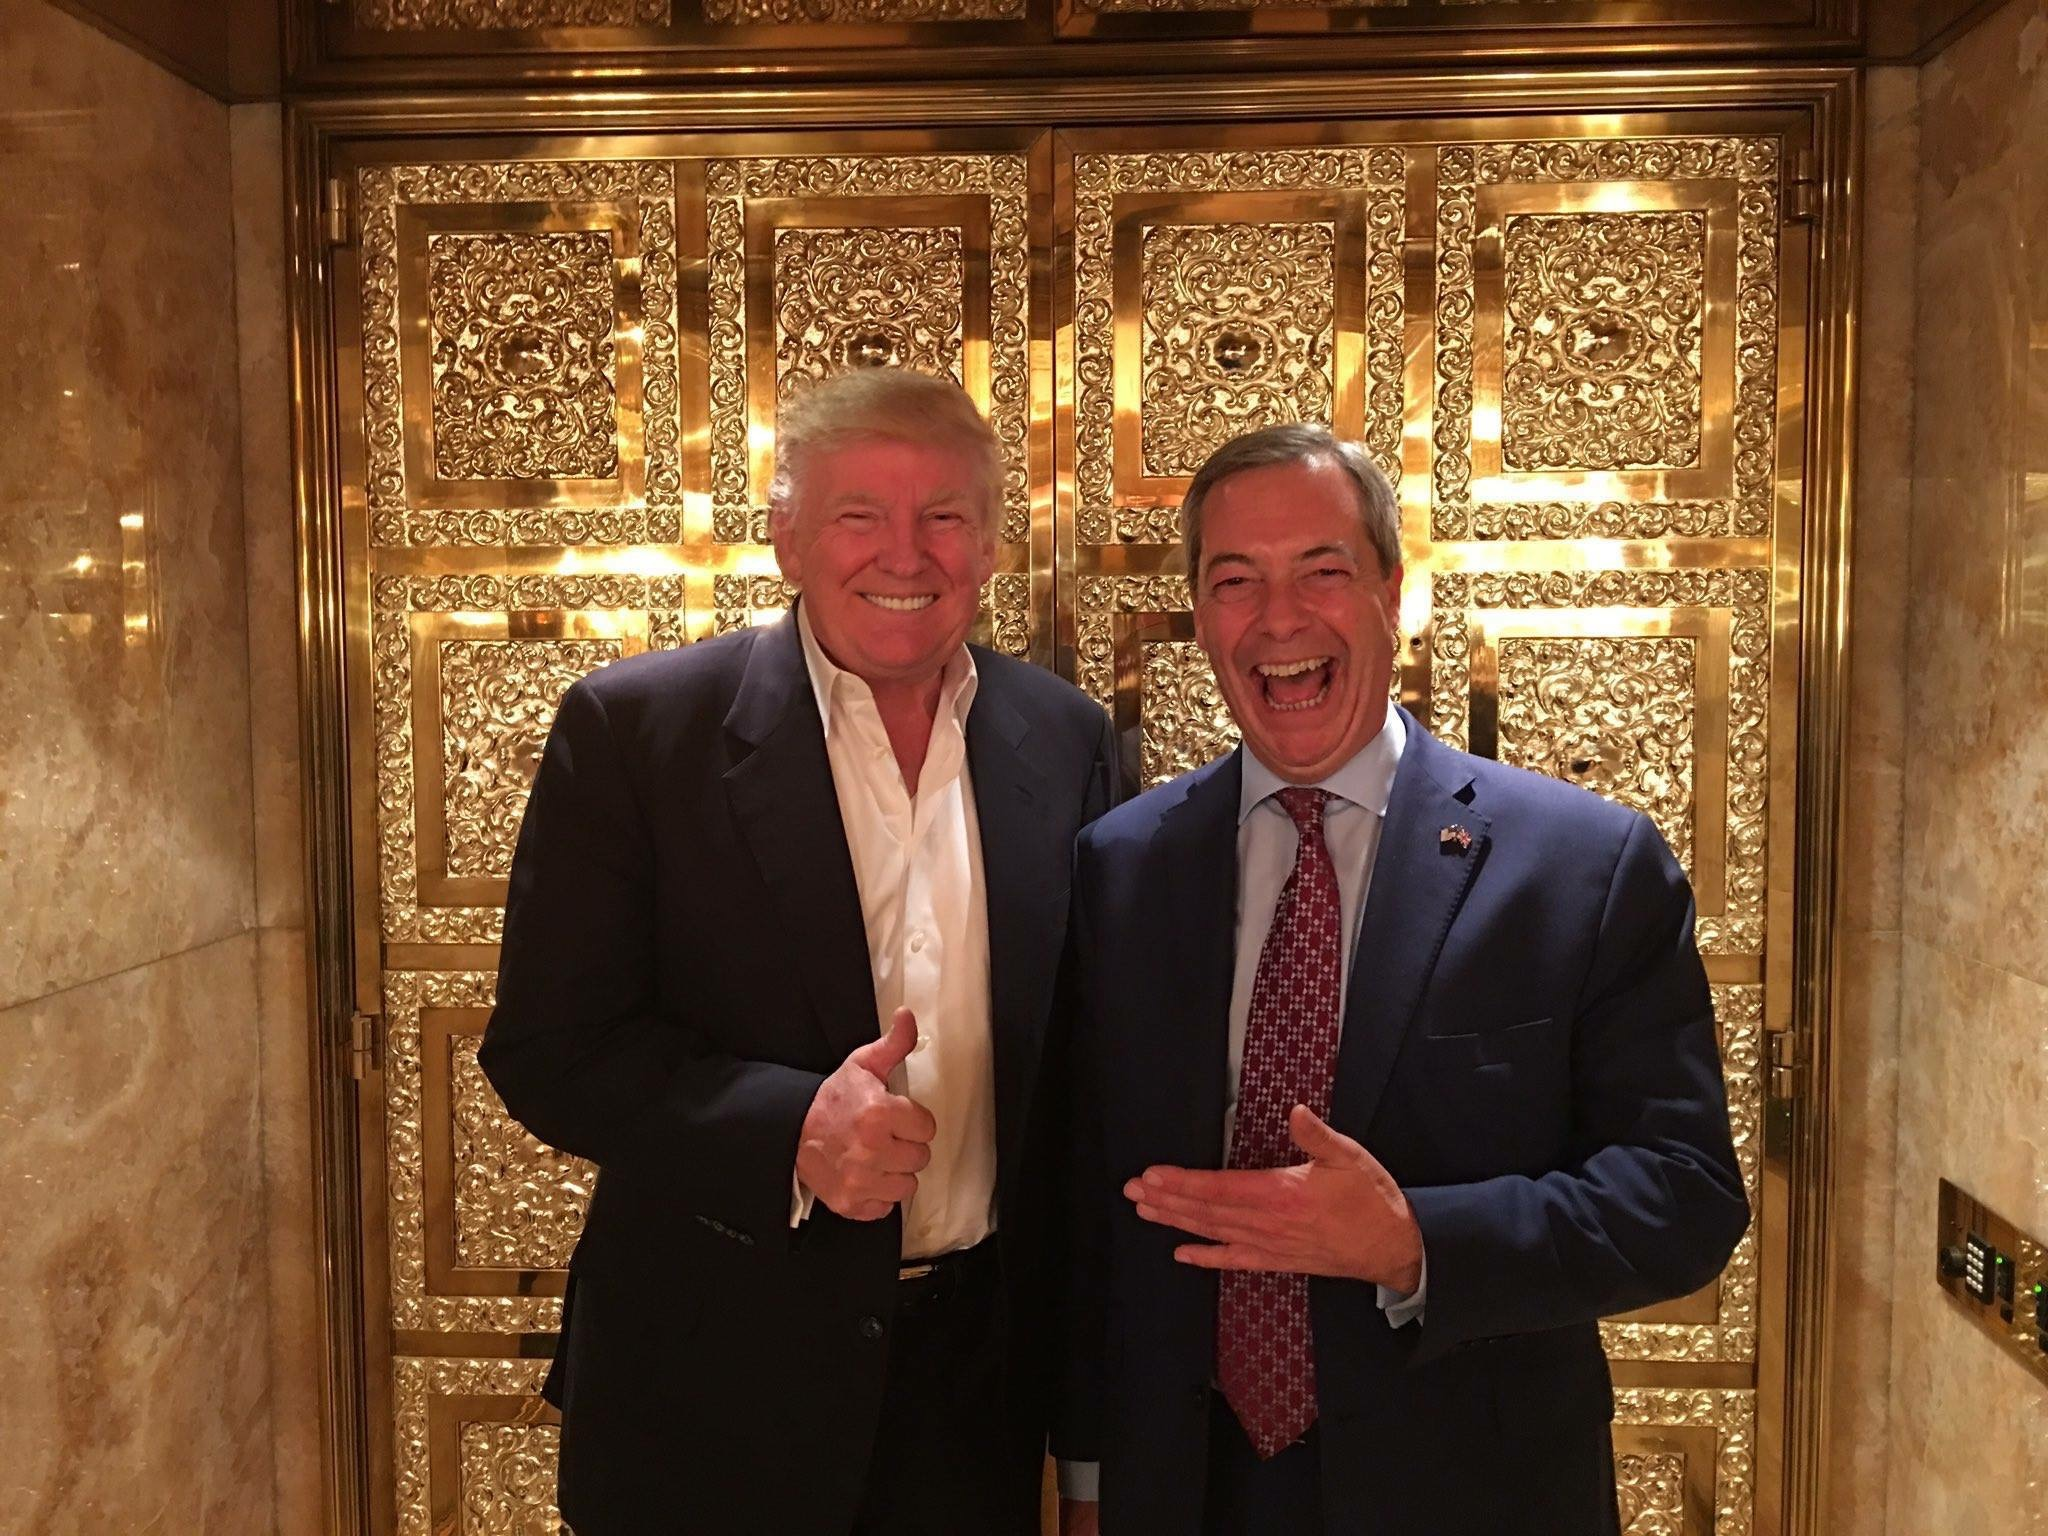 Best buds US President Trump (l) and UKIP Leader Nigel Farage are ready to become roomies.